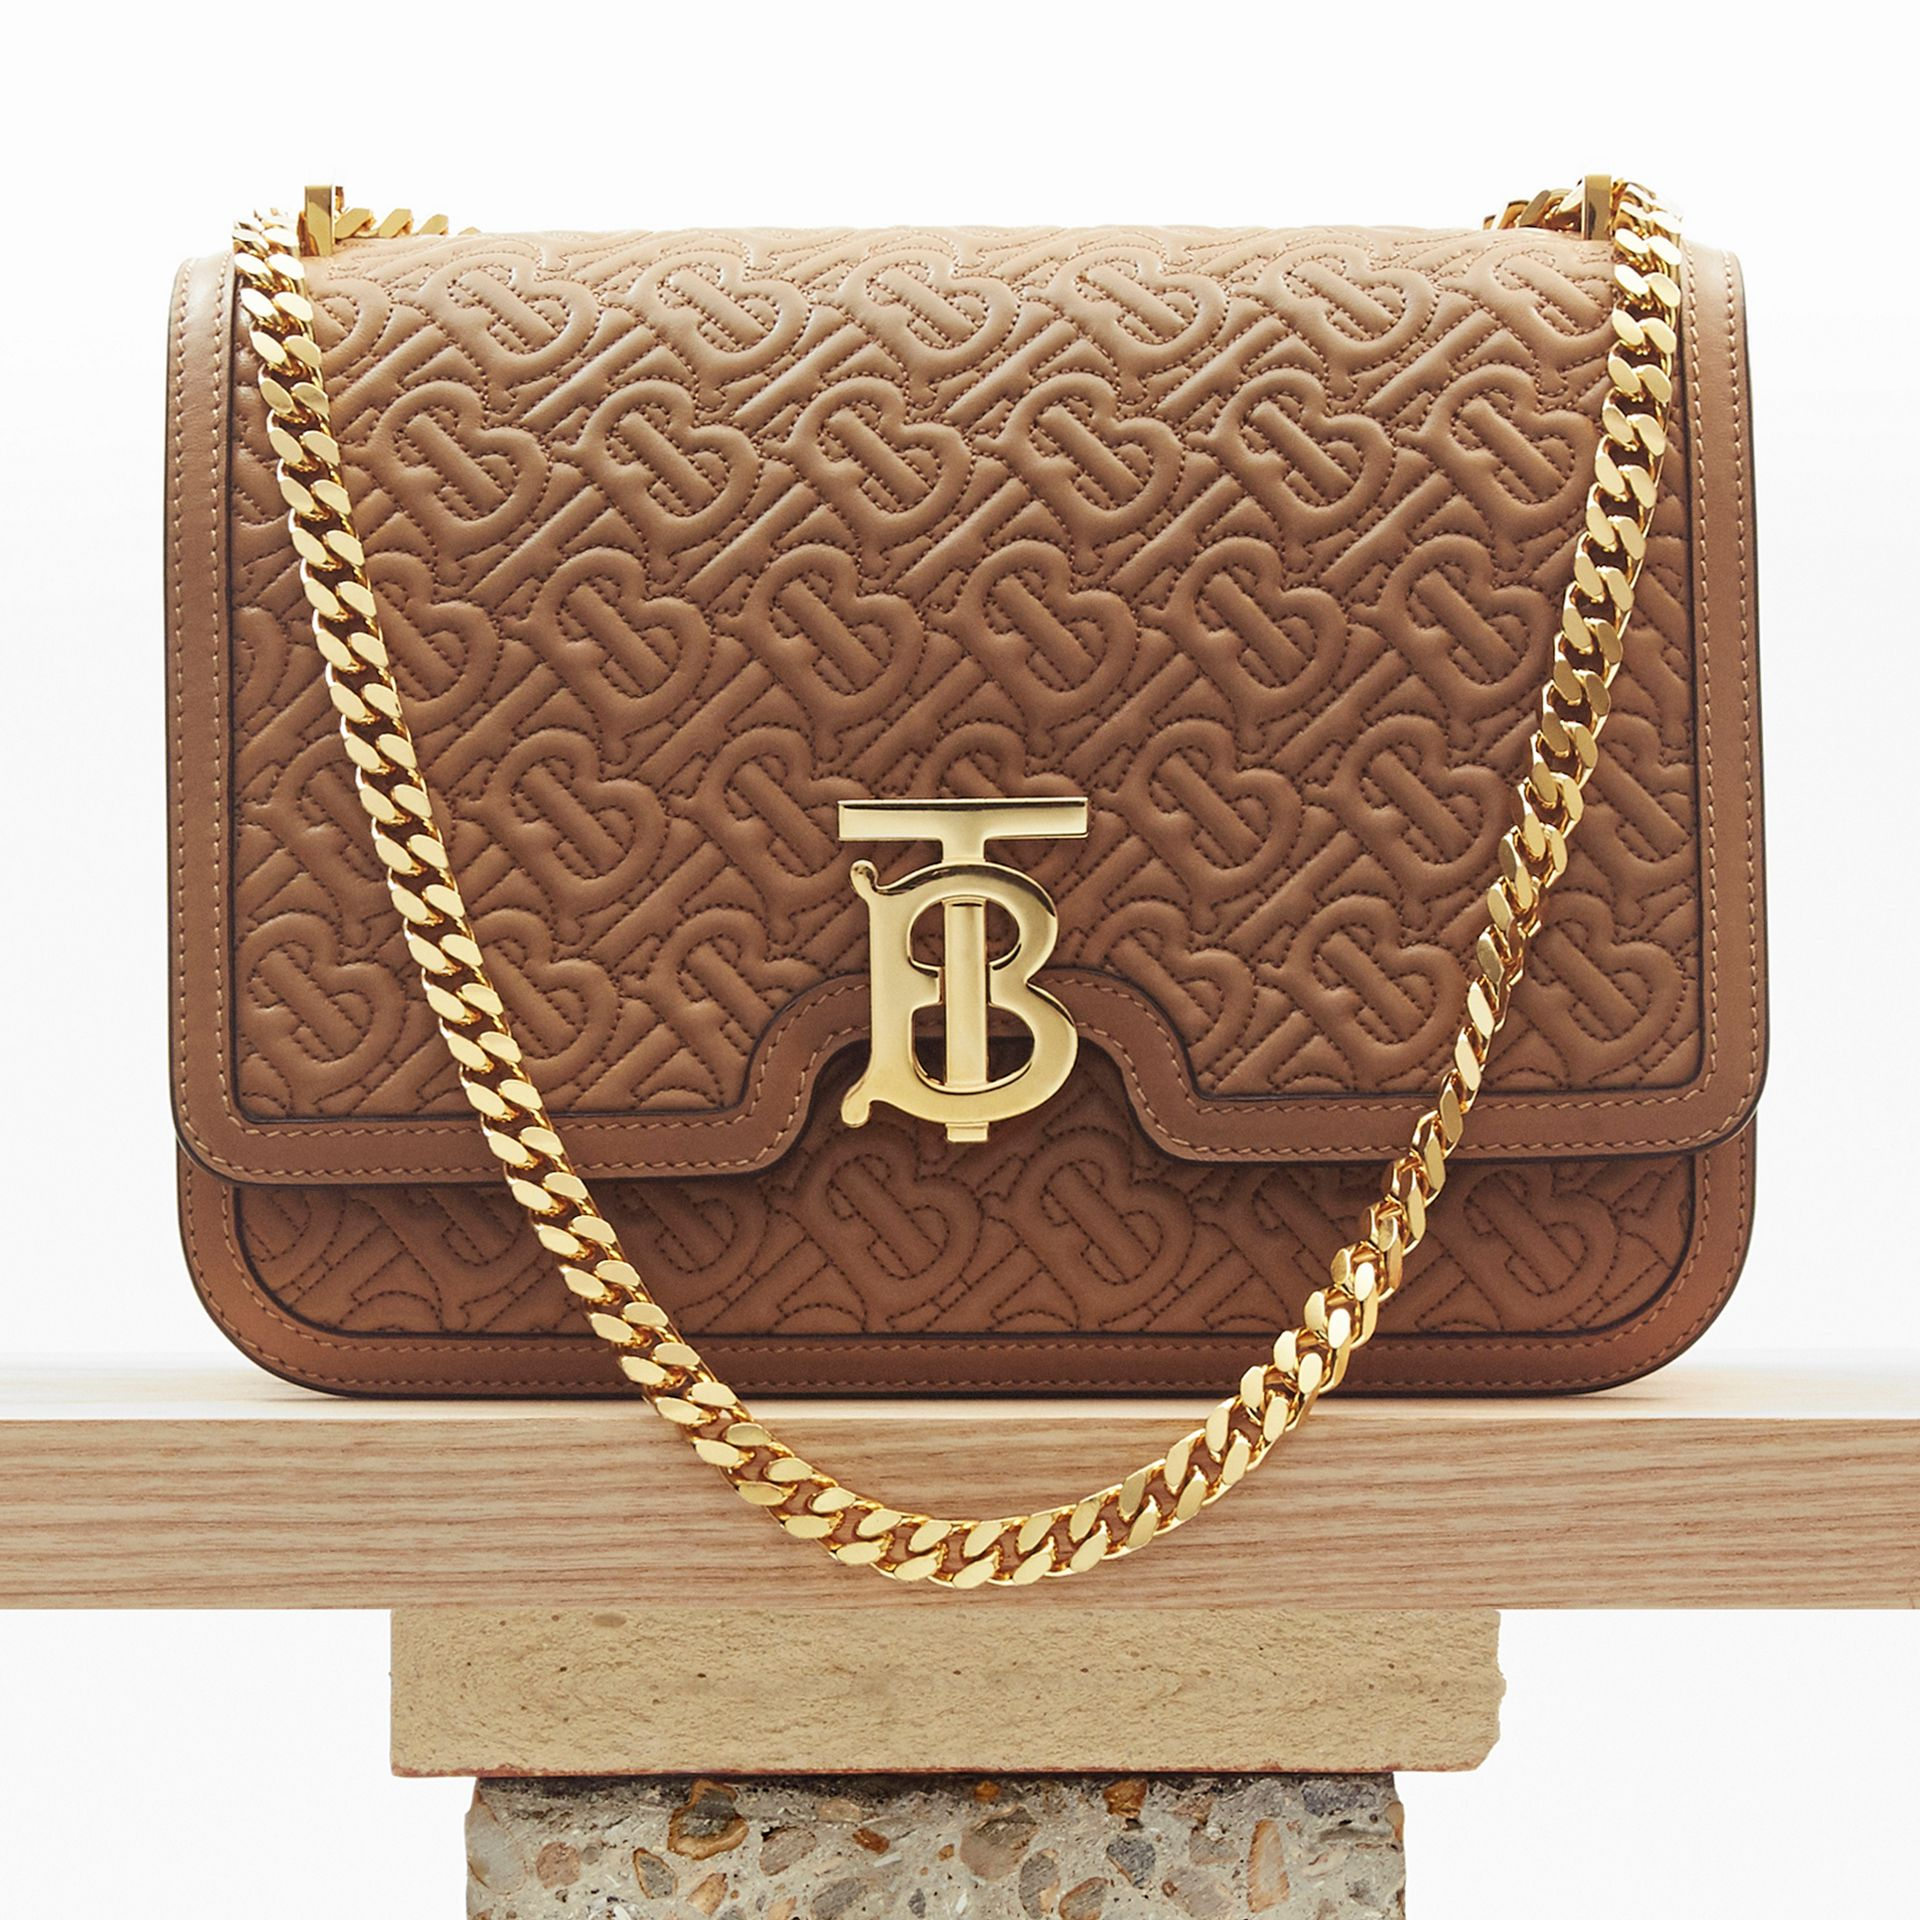 Medium Quilted Monogram Lambskin TB Bag in Honey - Women | Burberry Hong Kong S.A.R. - gallery image 8